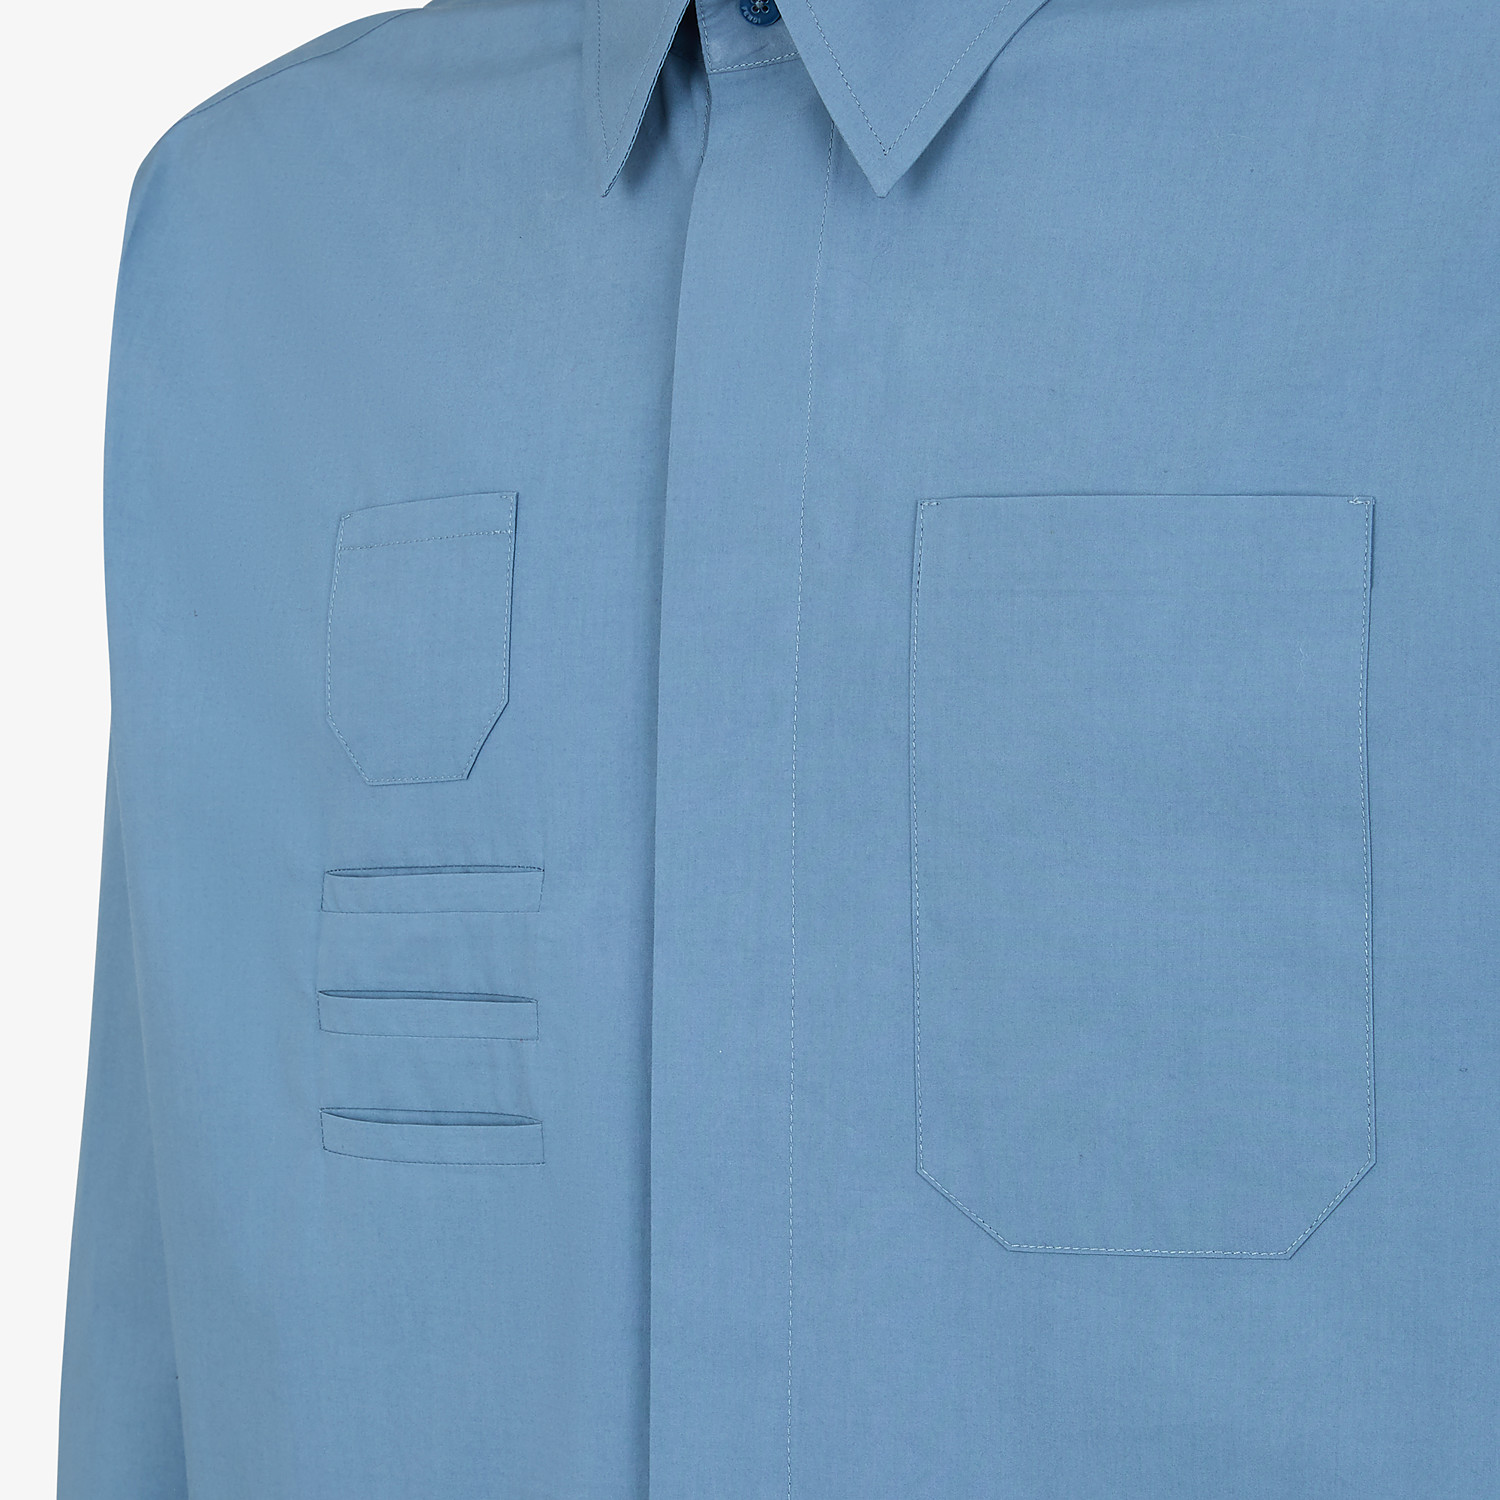 FENDI SHIRT - Light blue cotton shirt - view 3 detail